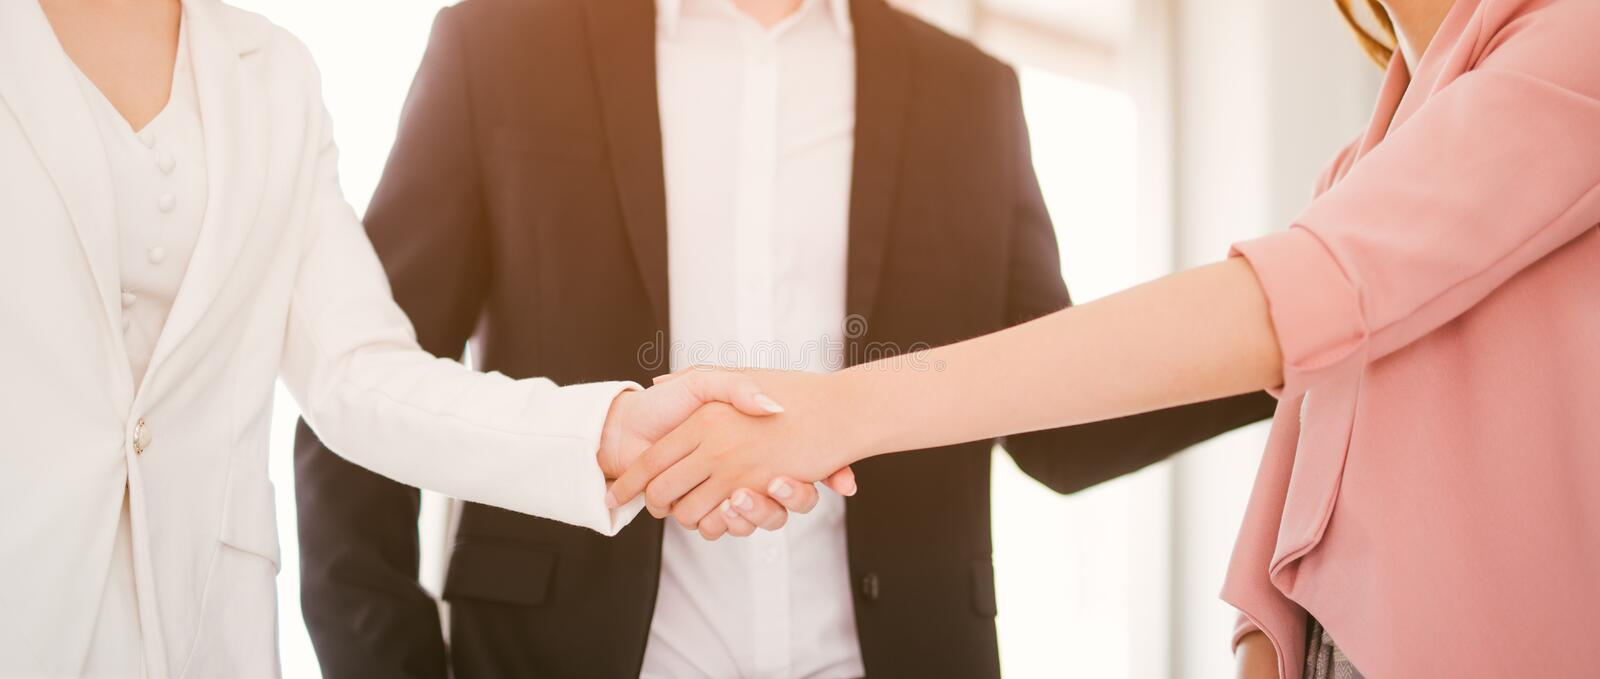 Handshake business concept. business woman shaking hands in office. stock image